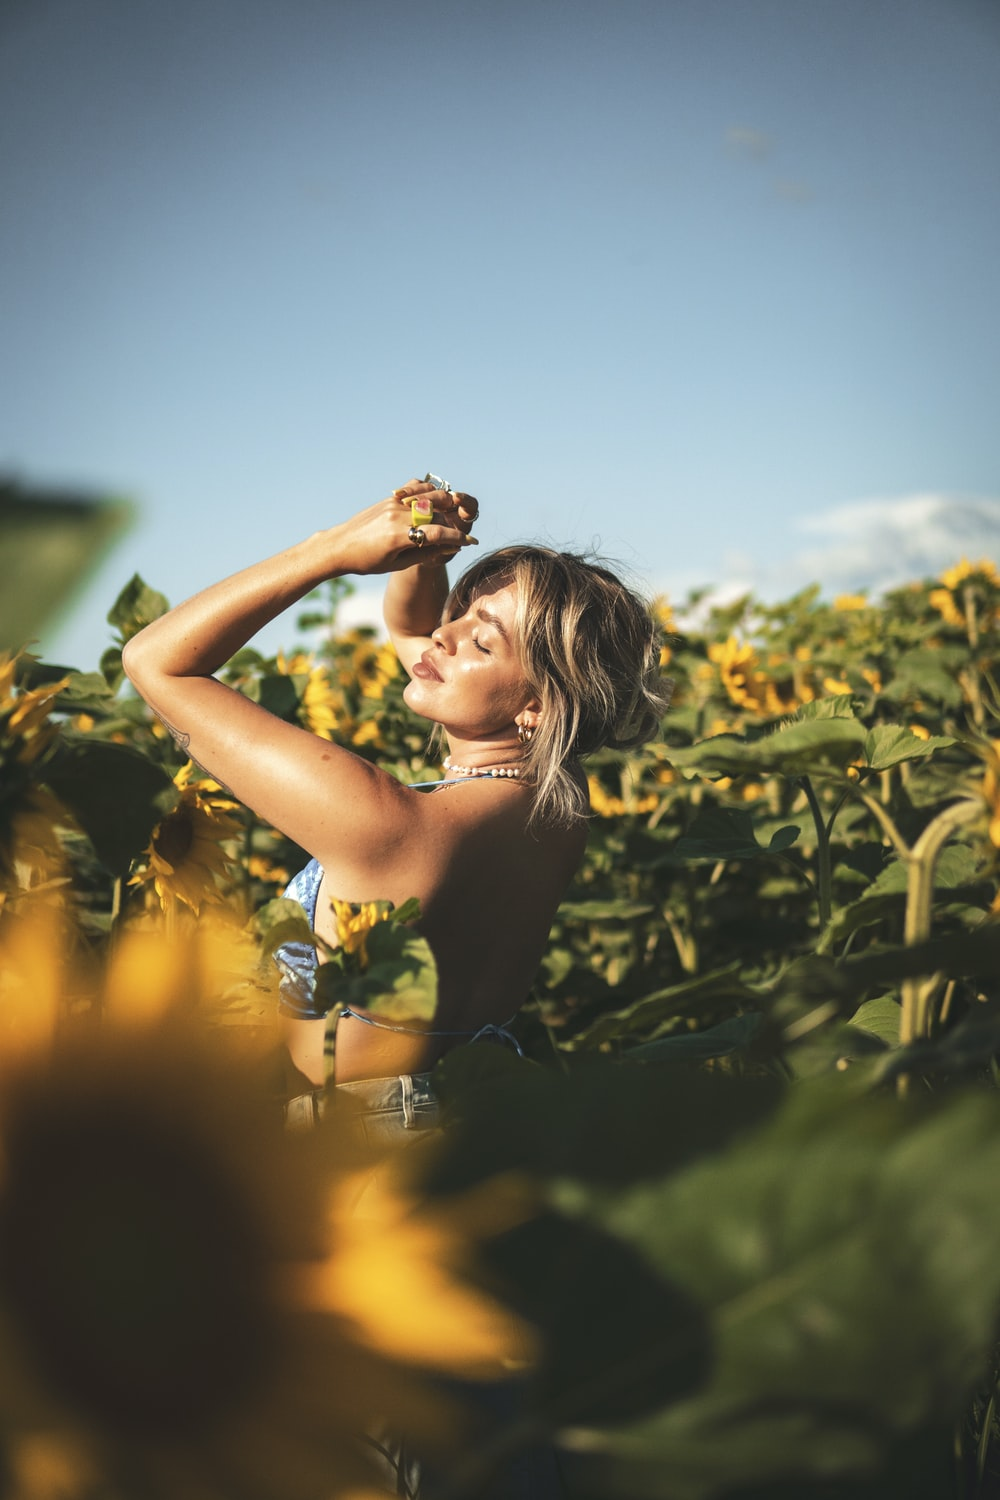 woman in yellow floral tank top standing on green grass field during daytime